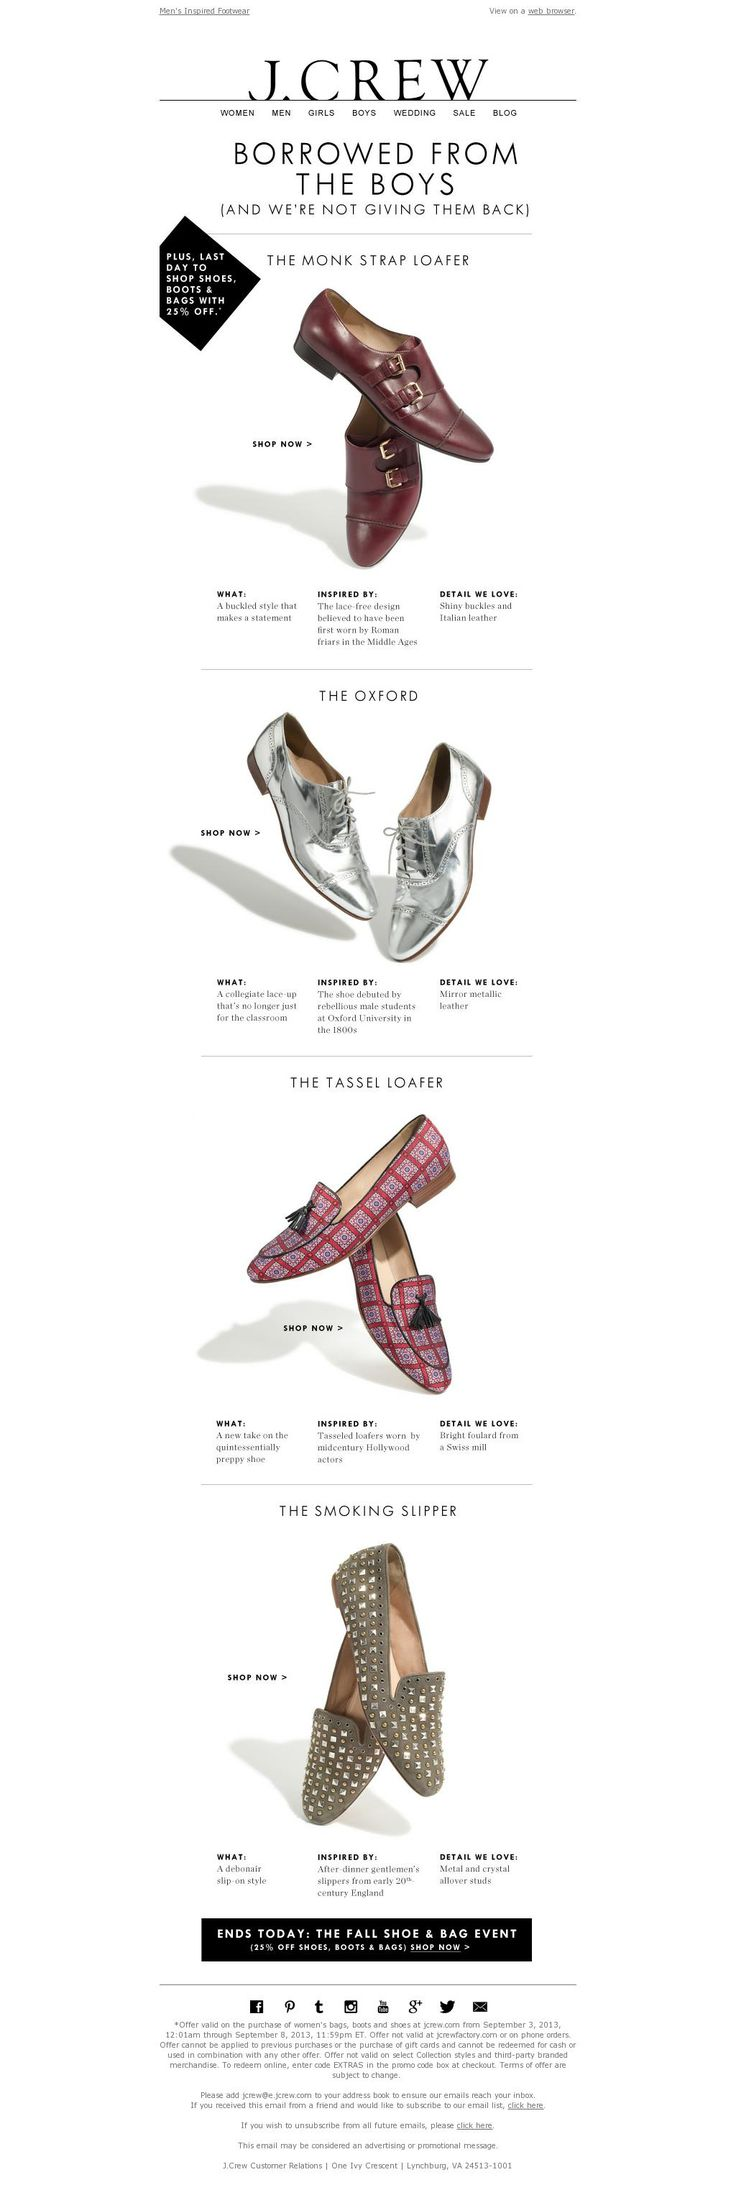 J.Crew Email Design shoes in detail